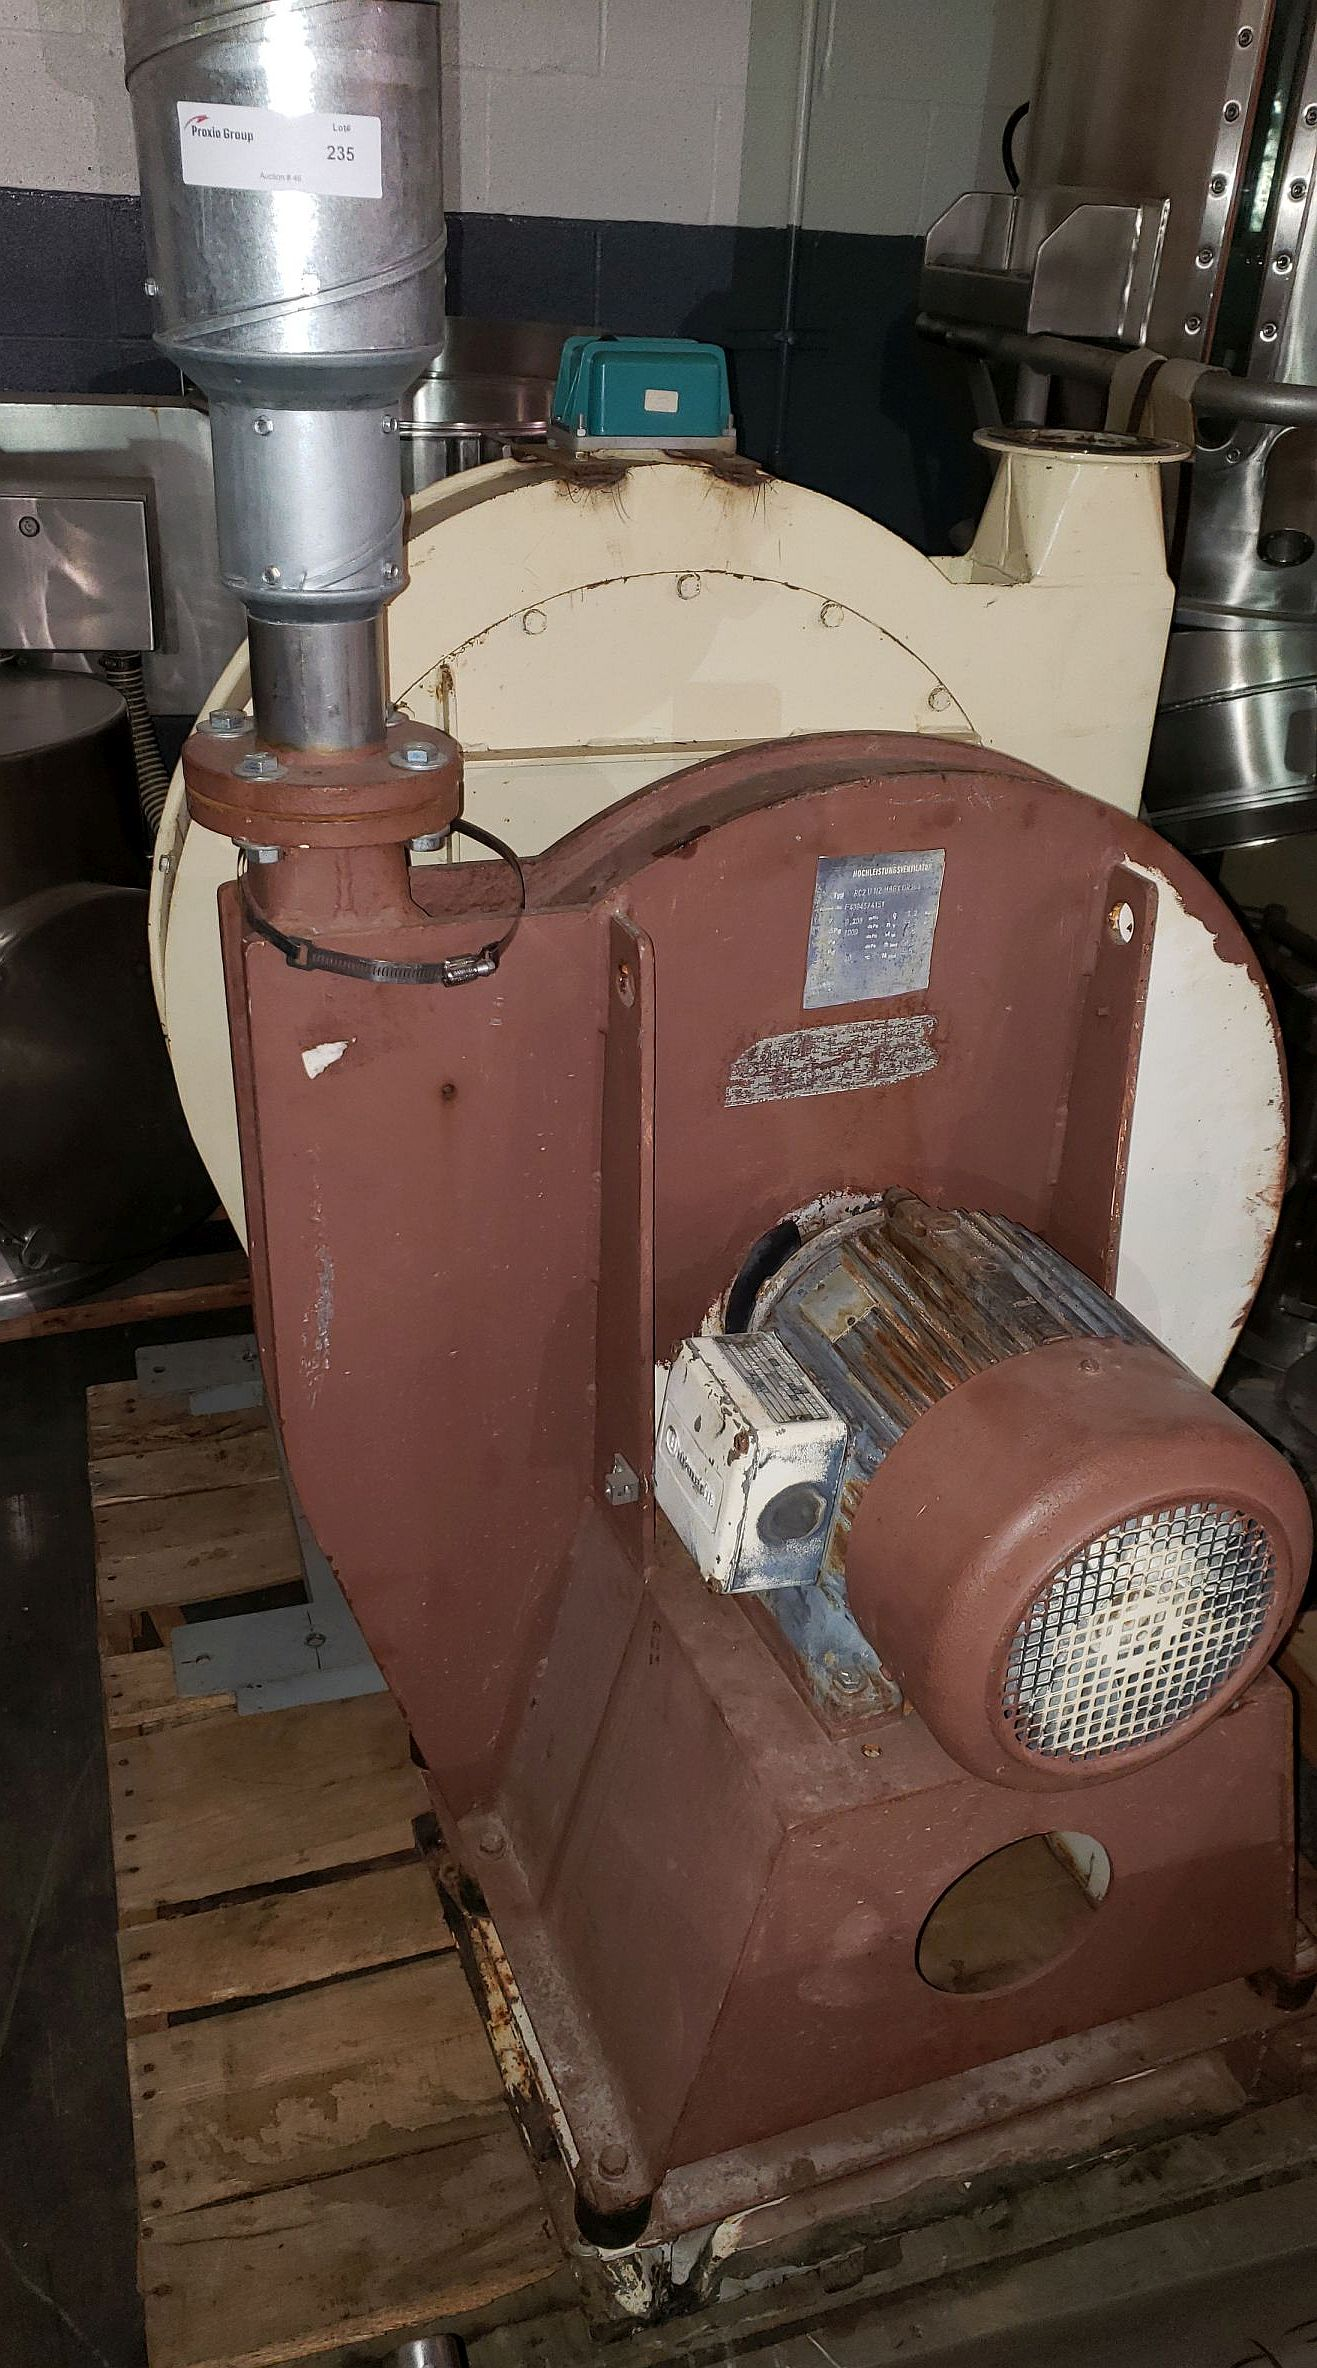 Lot 235 - Hochleistungsventilaor, 460 V, 3 phase blower, 5.5kW